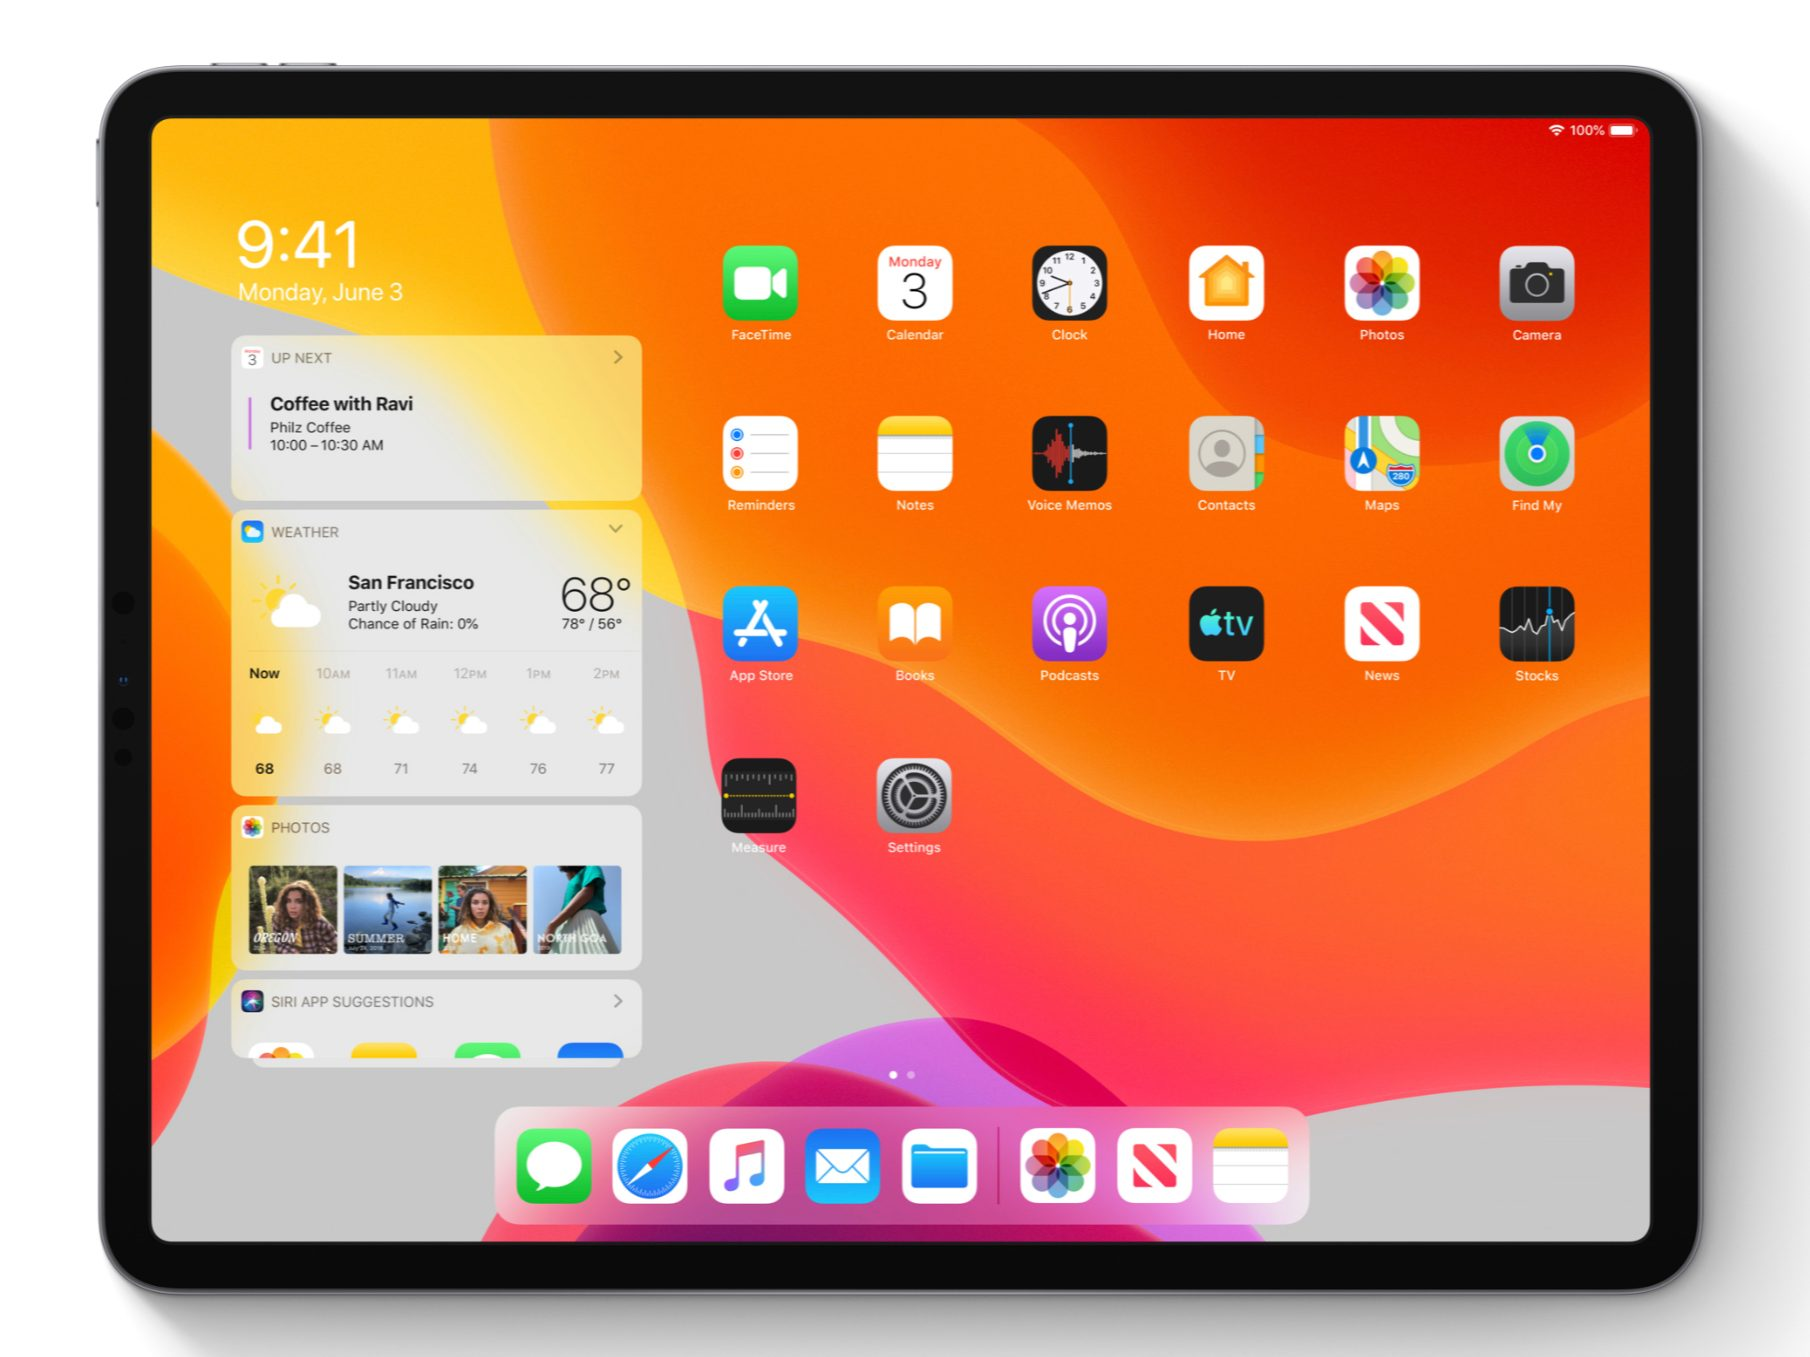 Image of iPadOS on iPad Pro